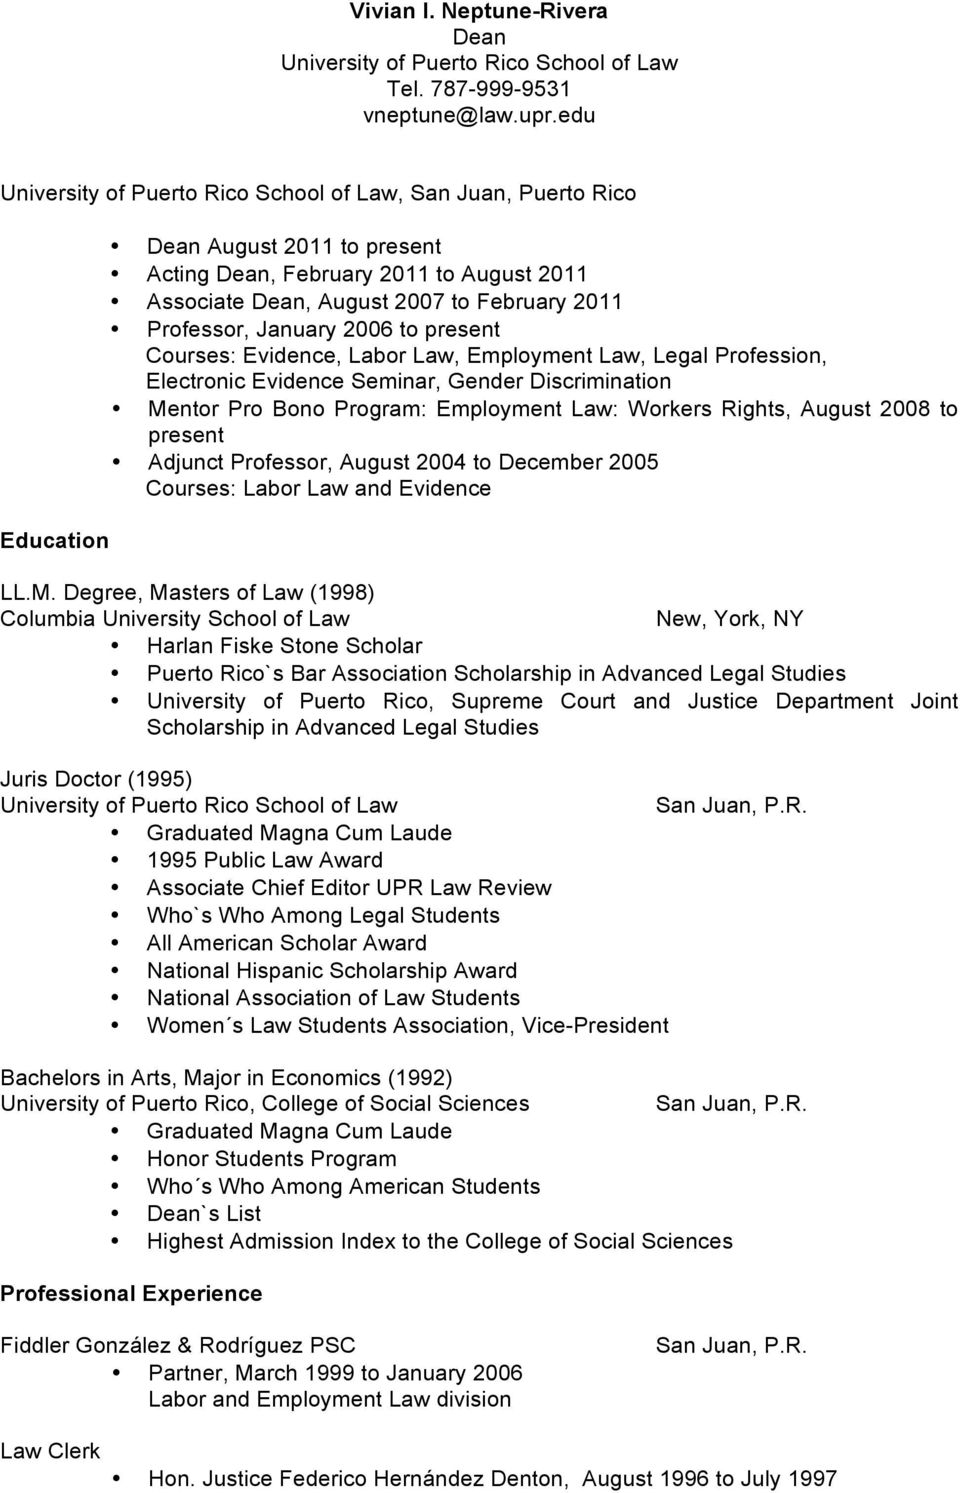 Professor, January 2006 to present Courses: Evidence, Labor Law, Employment Law, Legal Profession, Electronic Evidence Seminar, Gender Discrimination Mentor Pro Bono Program: Employment Law: Workers